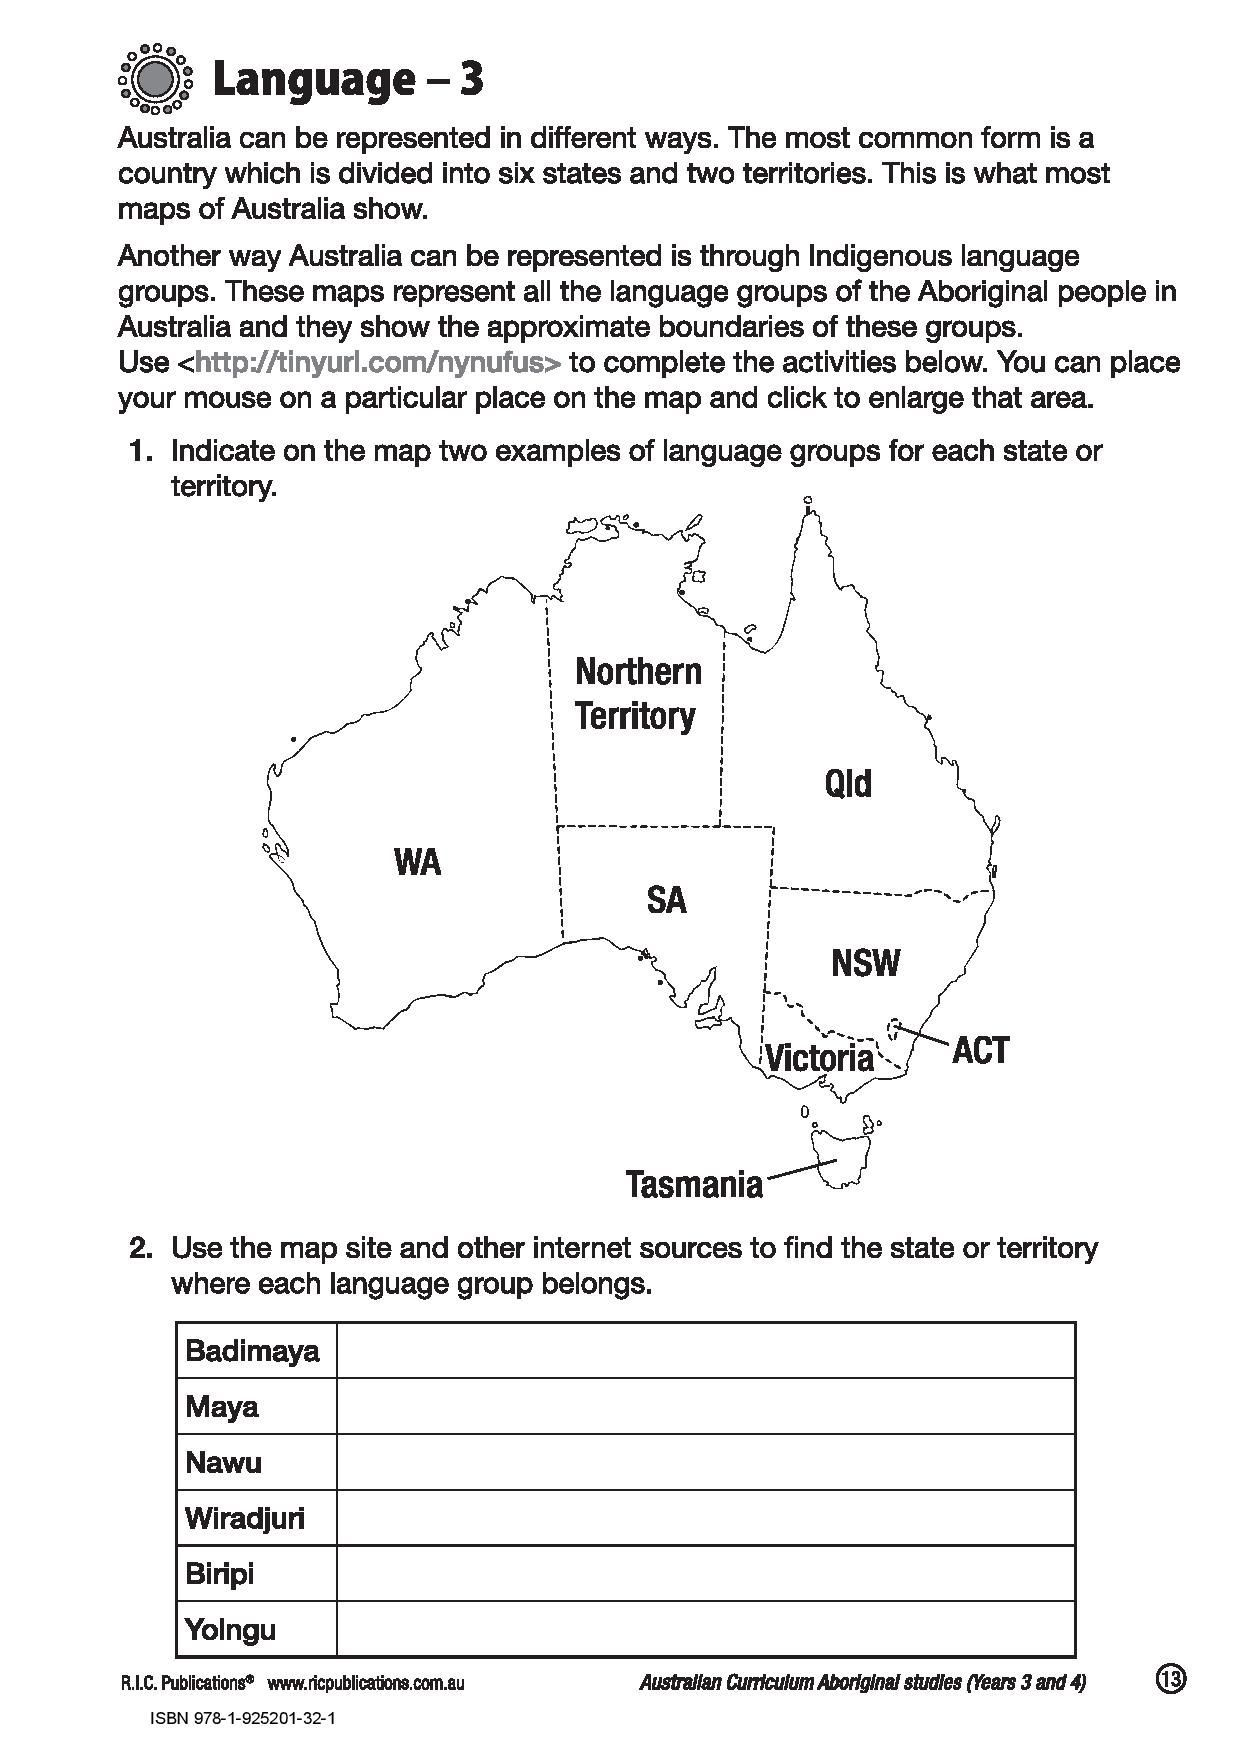 Aboriginal Worksheets Free Printables Printable Worksheets Are A Valuable Classroom Tool They No Long In 2021 Free Printable Worksheets Aboriginal Language Teaching [ 1754 x 1240 Pixel ]